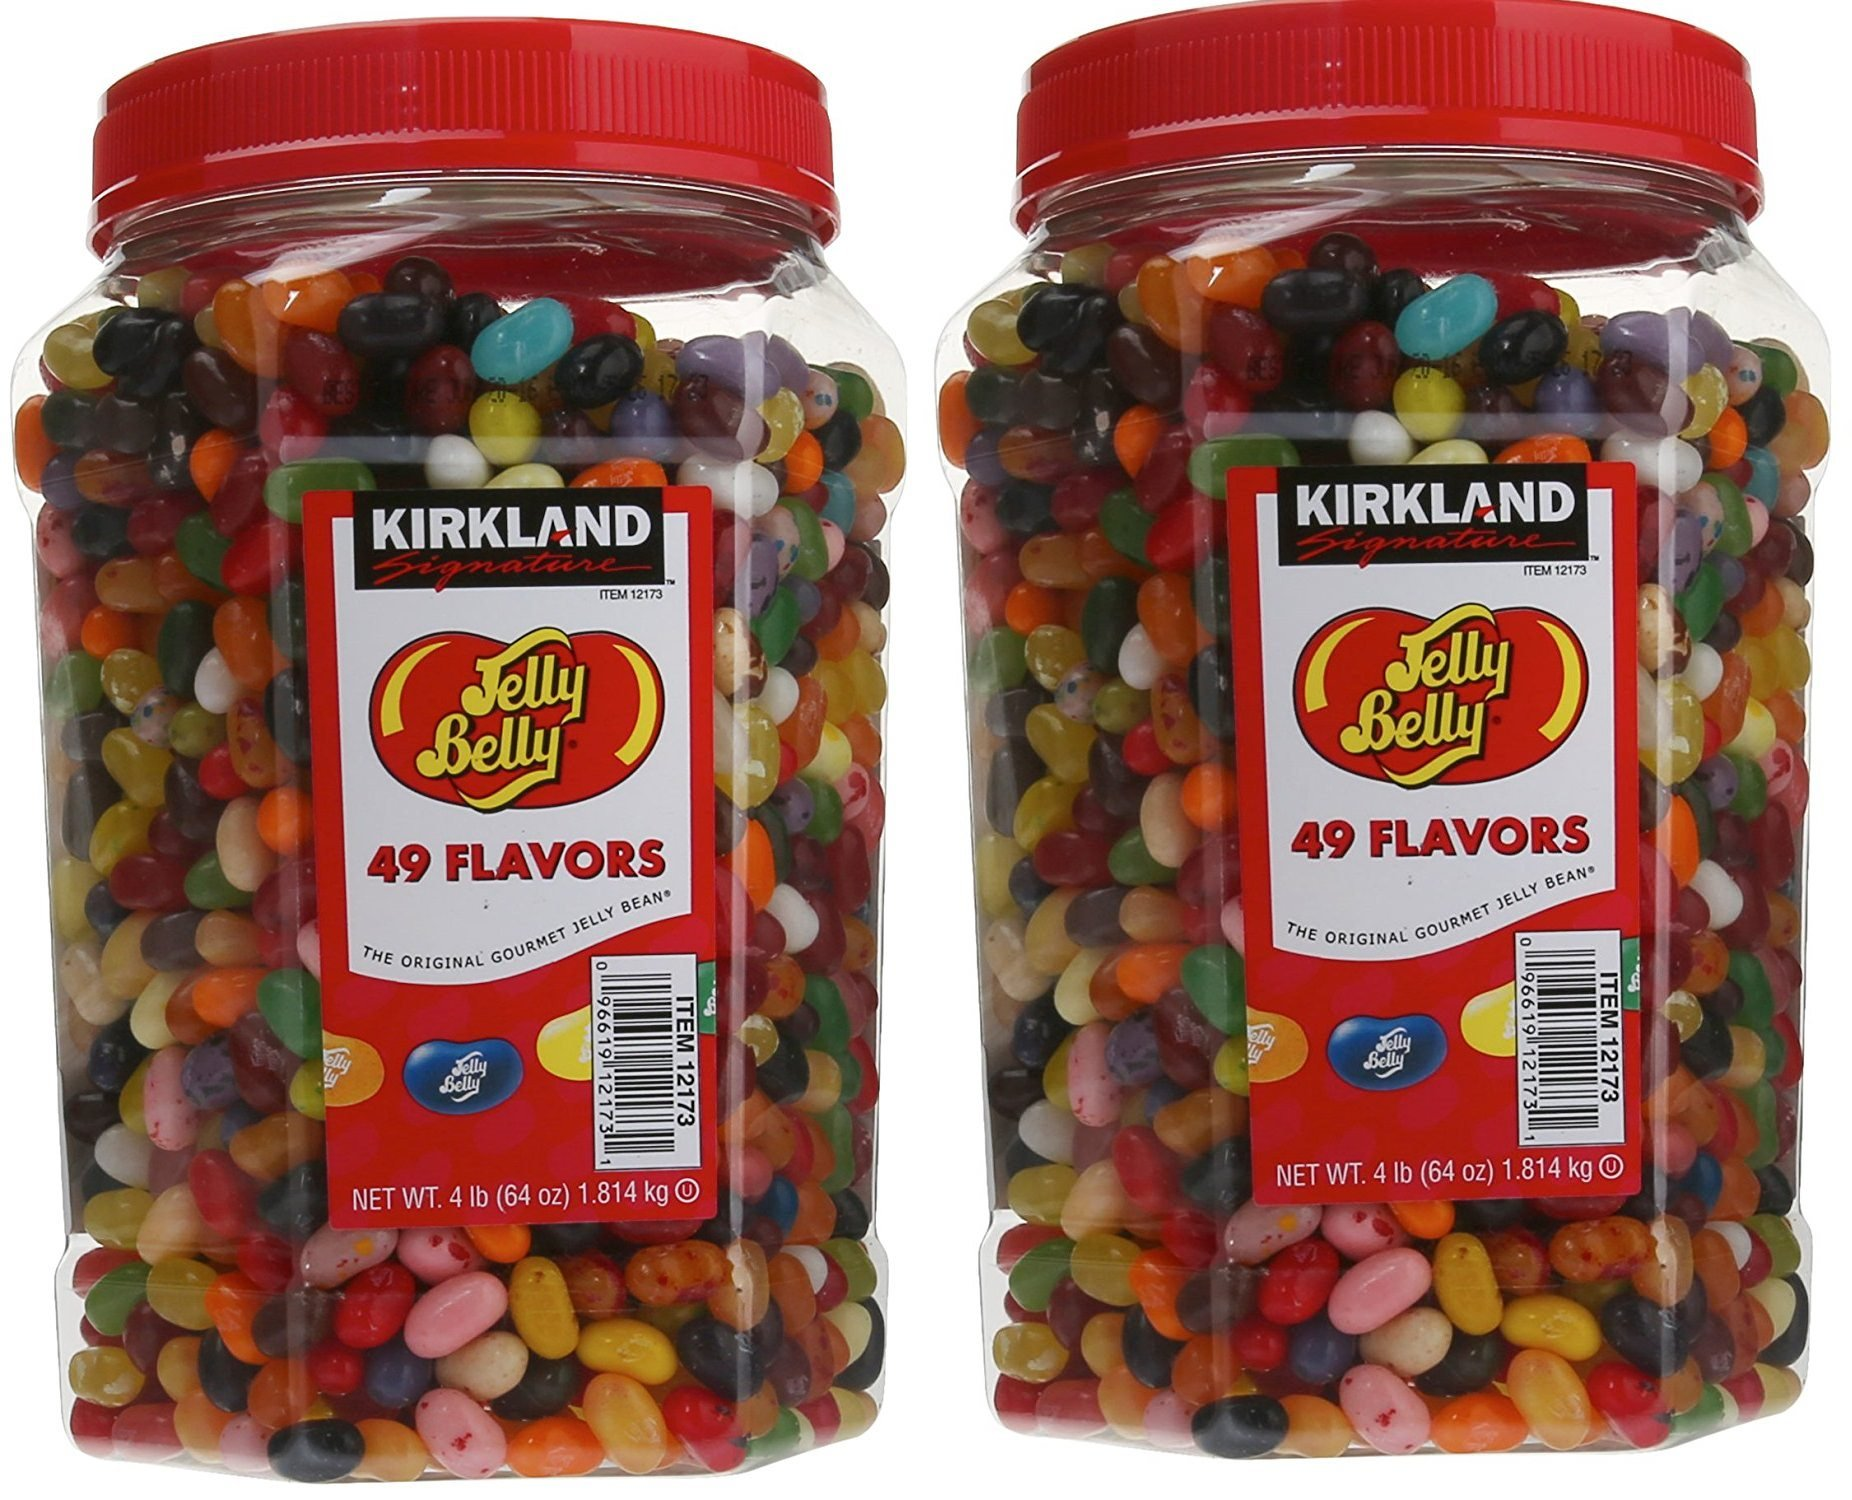 Kirkland Signature Jelly Belly Jelly Beans, 8 Pounds by Kirkland Signature